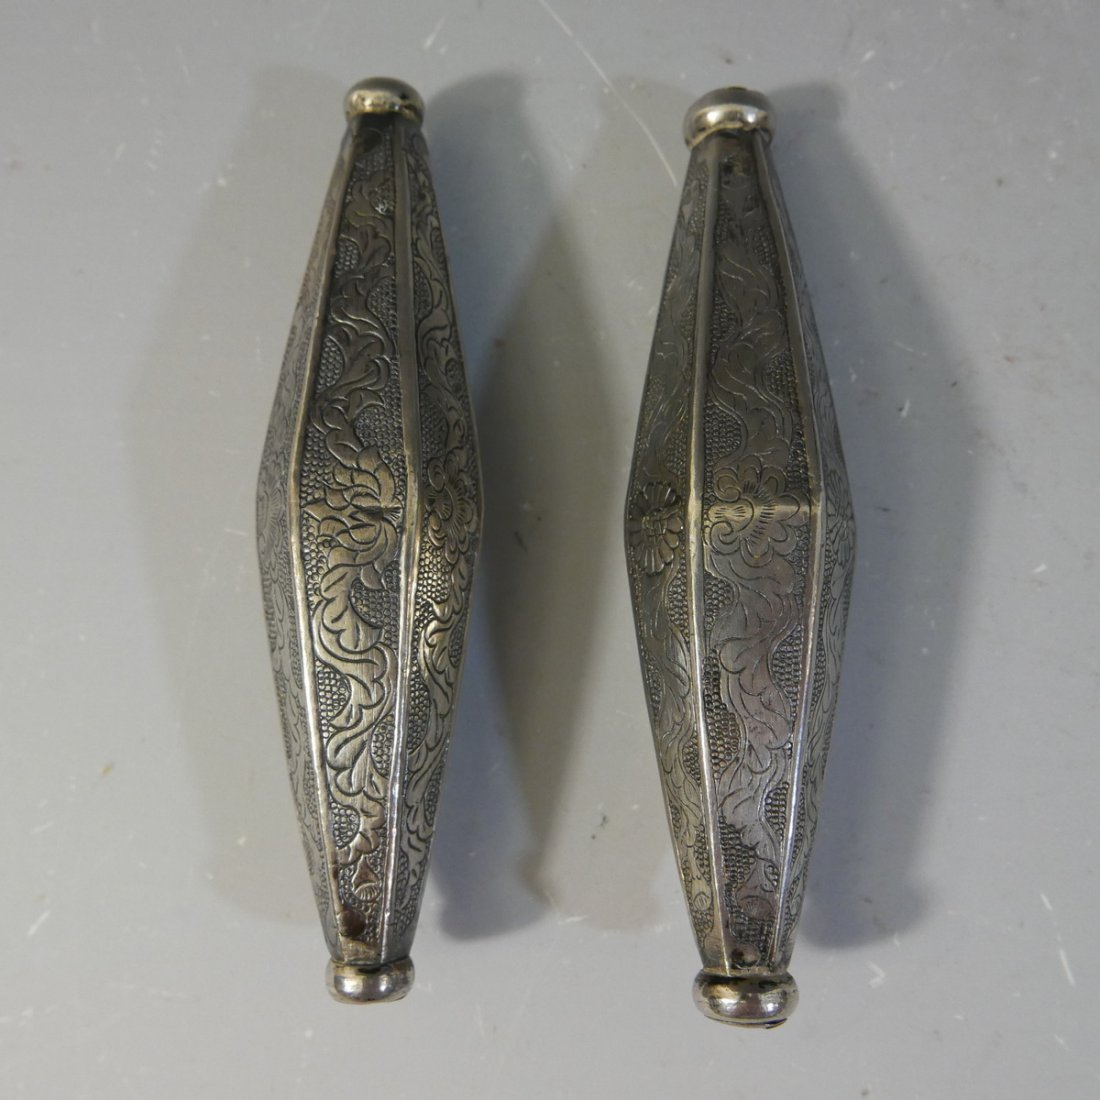 PAIR OF CHINESE SILVER OBJECT - 98 GRAMS